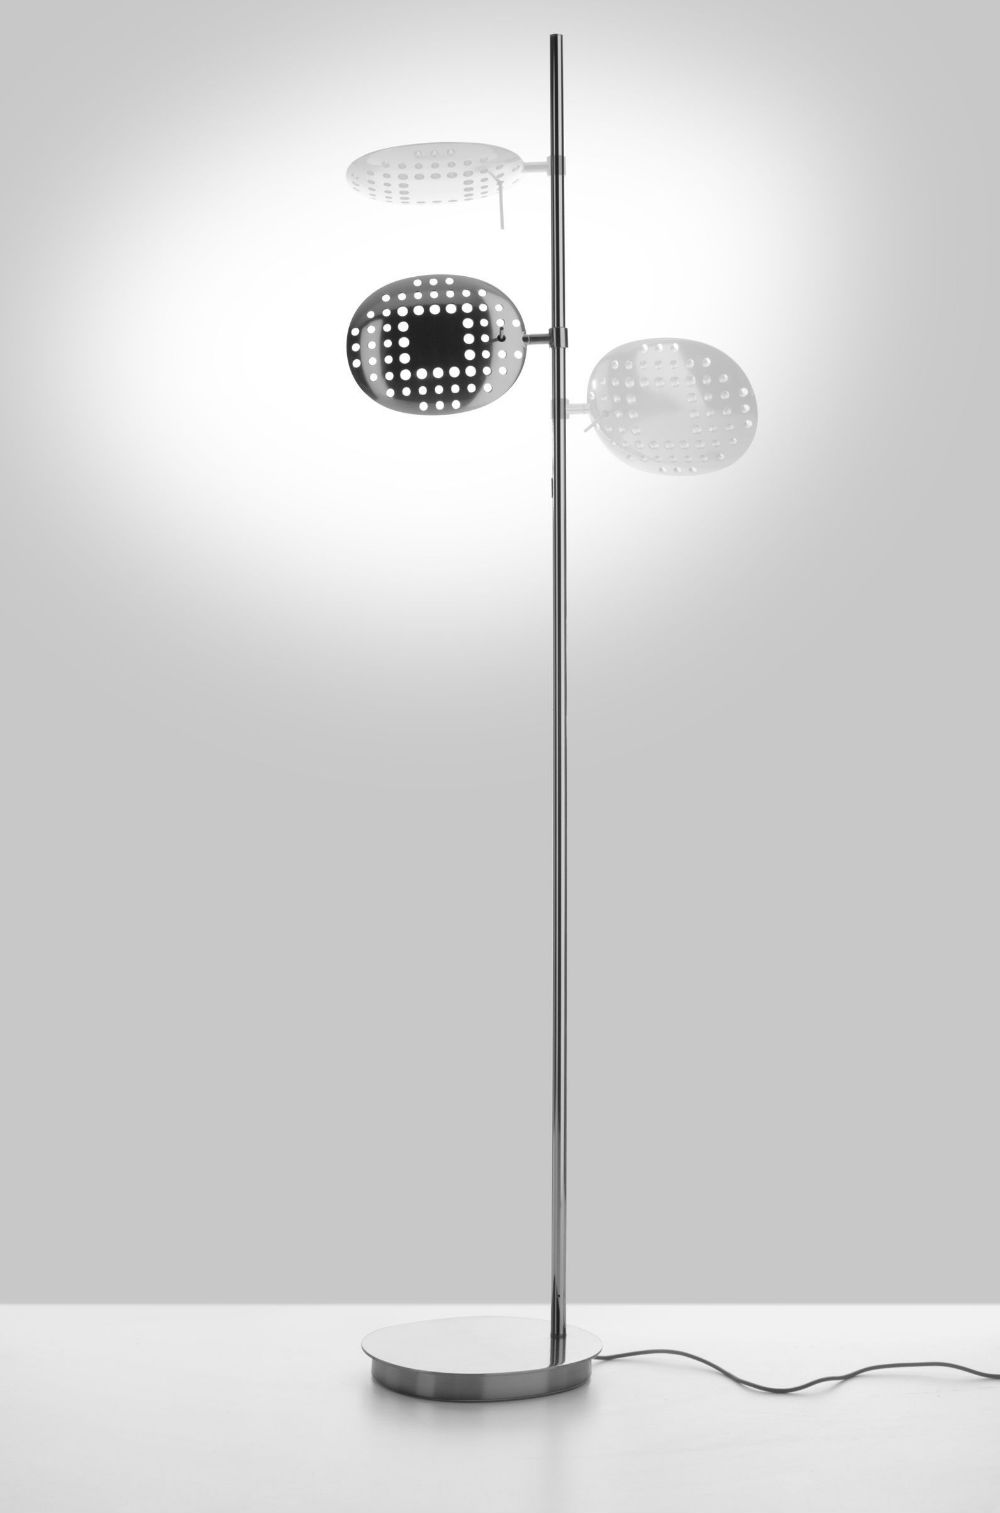 Reall Floor lamp LED 40w 3000K dimmable Polished Aluminium